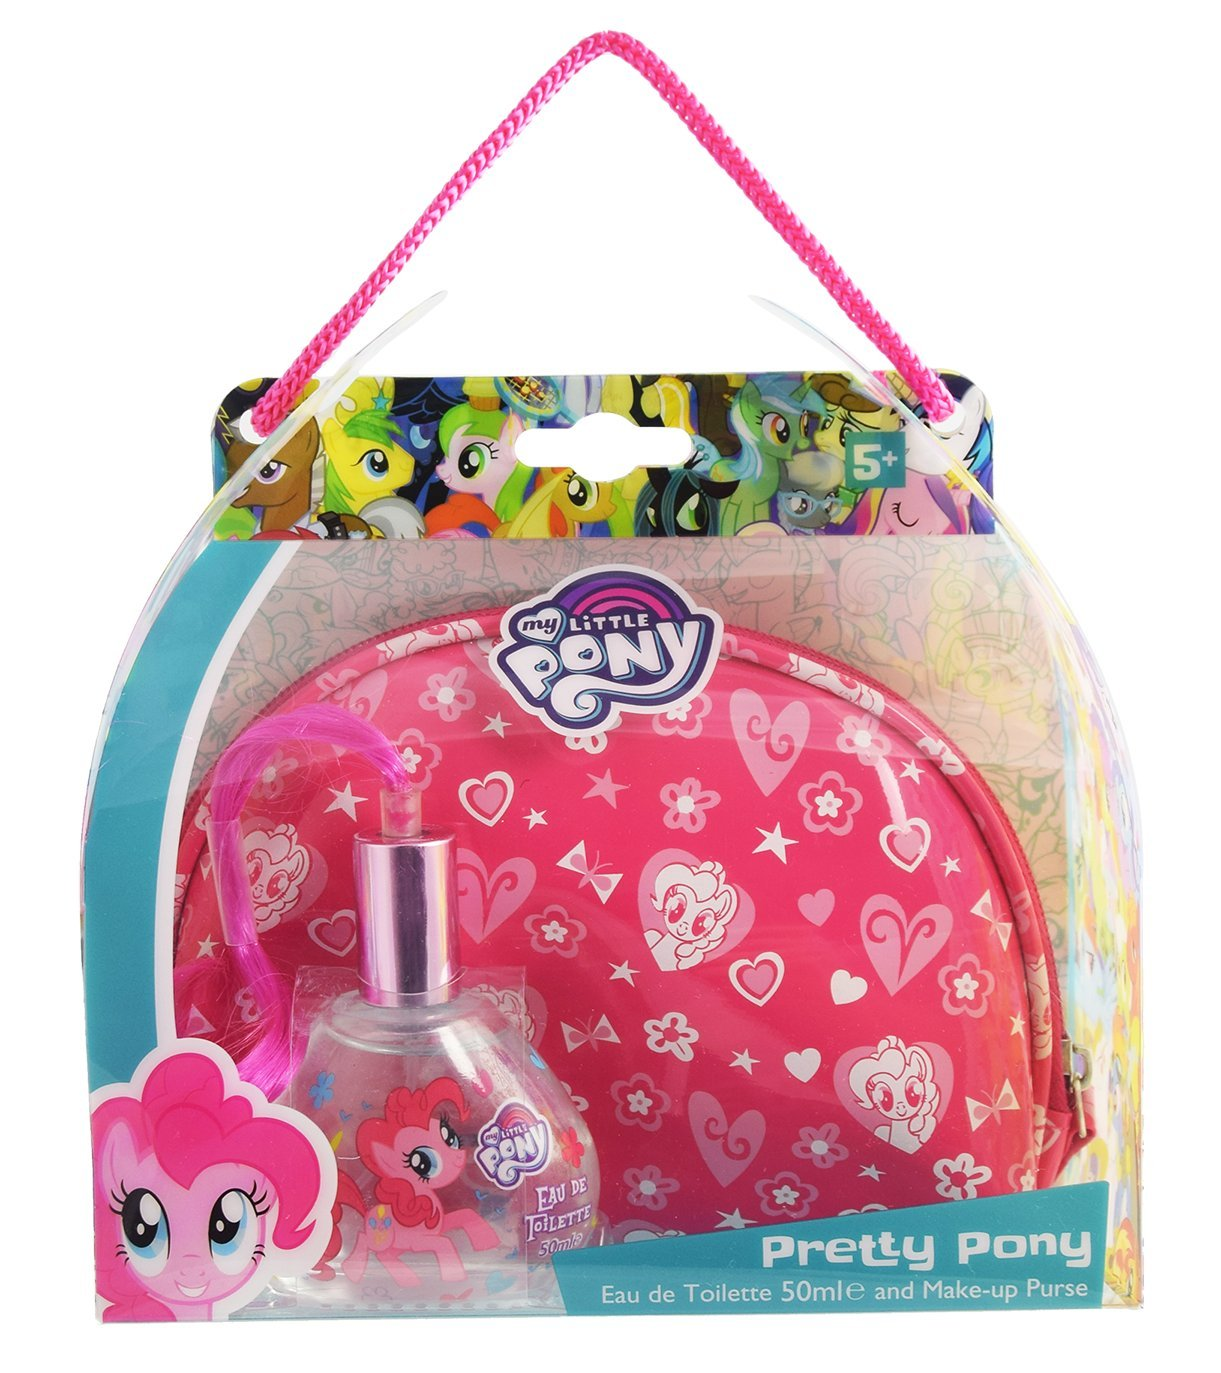 My Little Pony Pretty EDT Gift Set Kokomo Ltd K33012